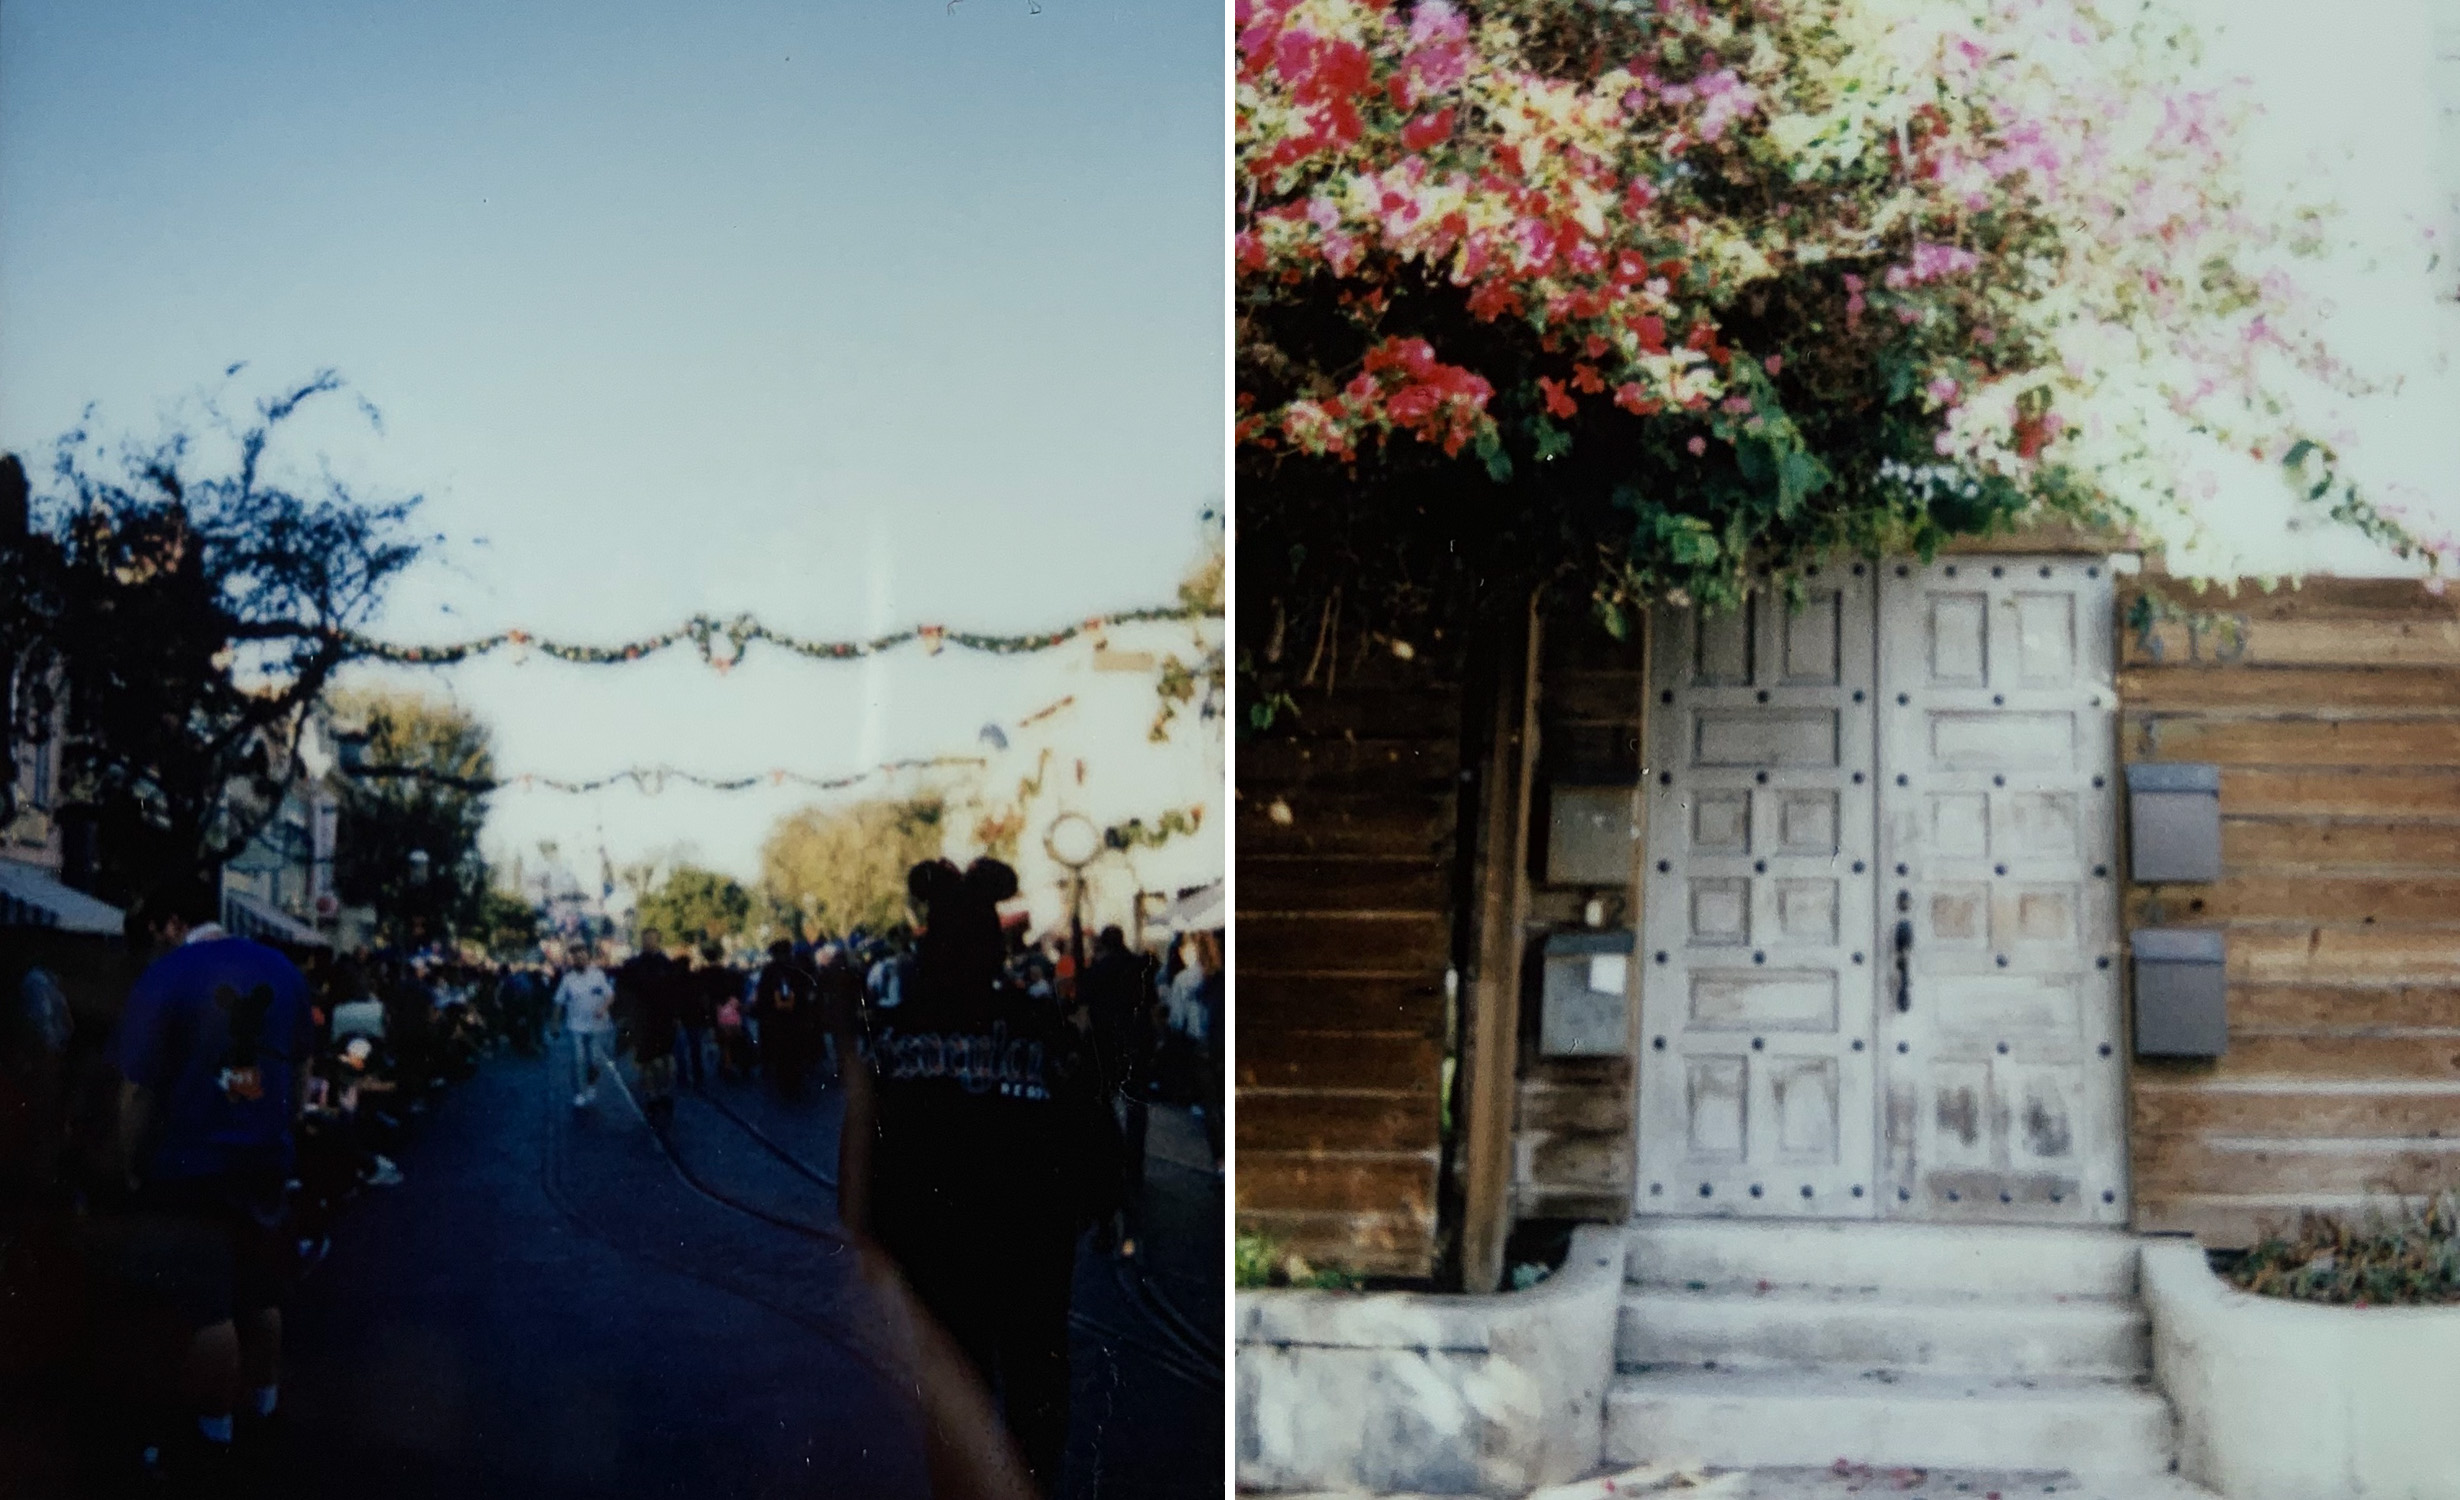 Disneyland on the left and a really cute door in Venice on the right!